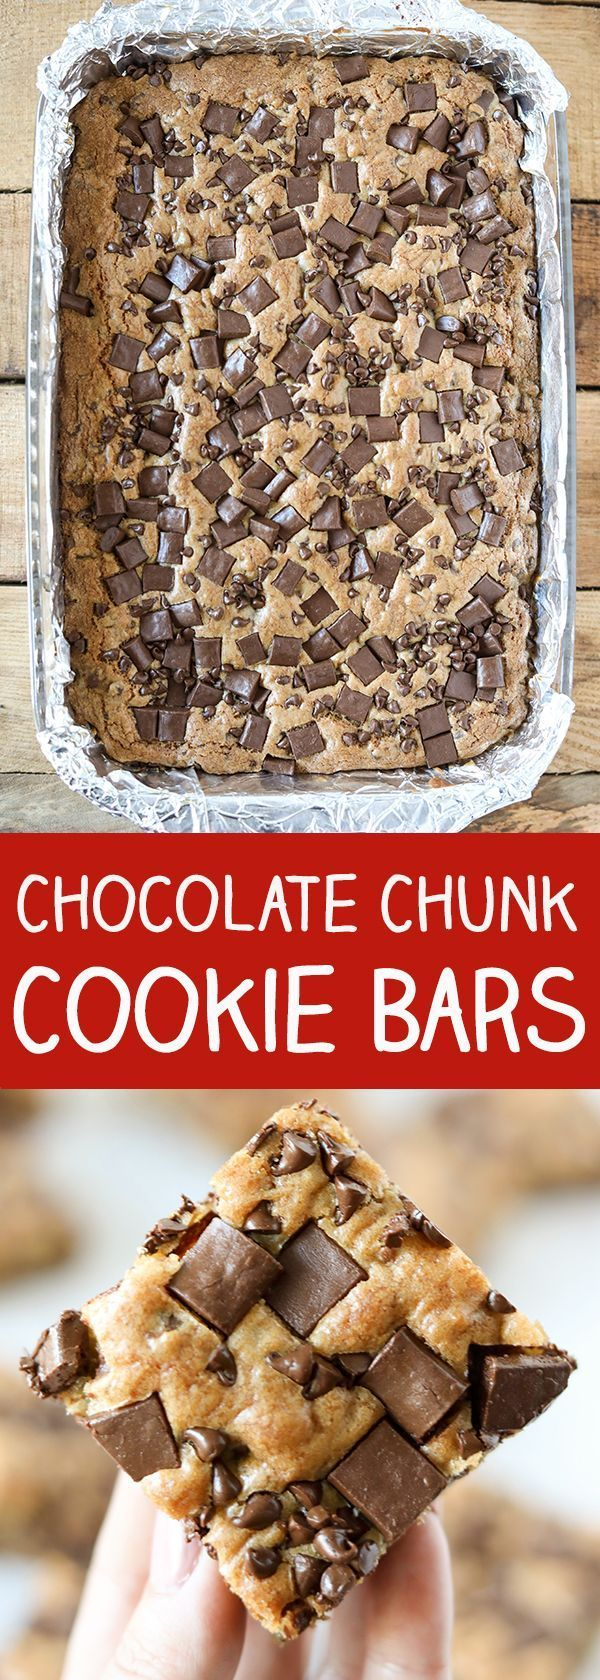 Chocolate Chunk Cookie Bars Recipe With Images Chocolate Chunk Cookies Chocolate Chip Cookie Bars Desserts